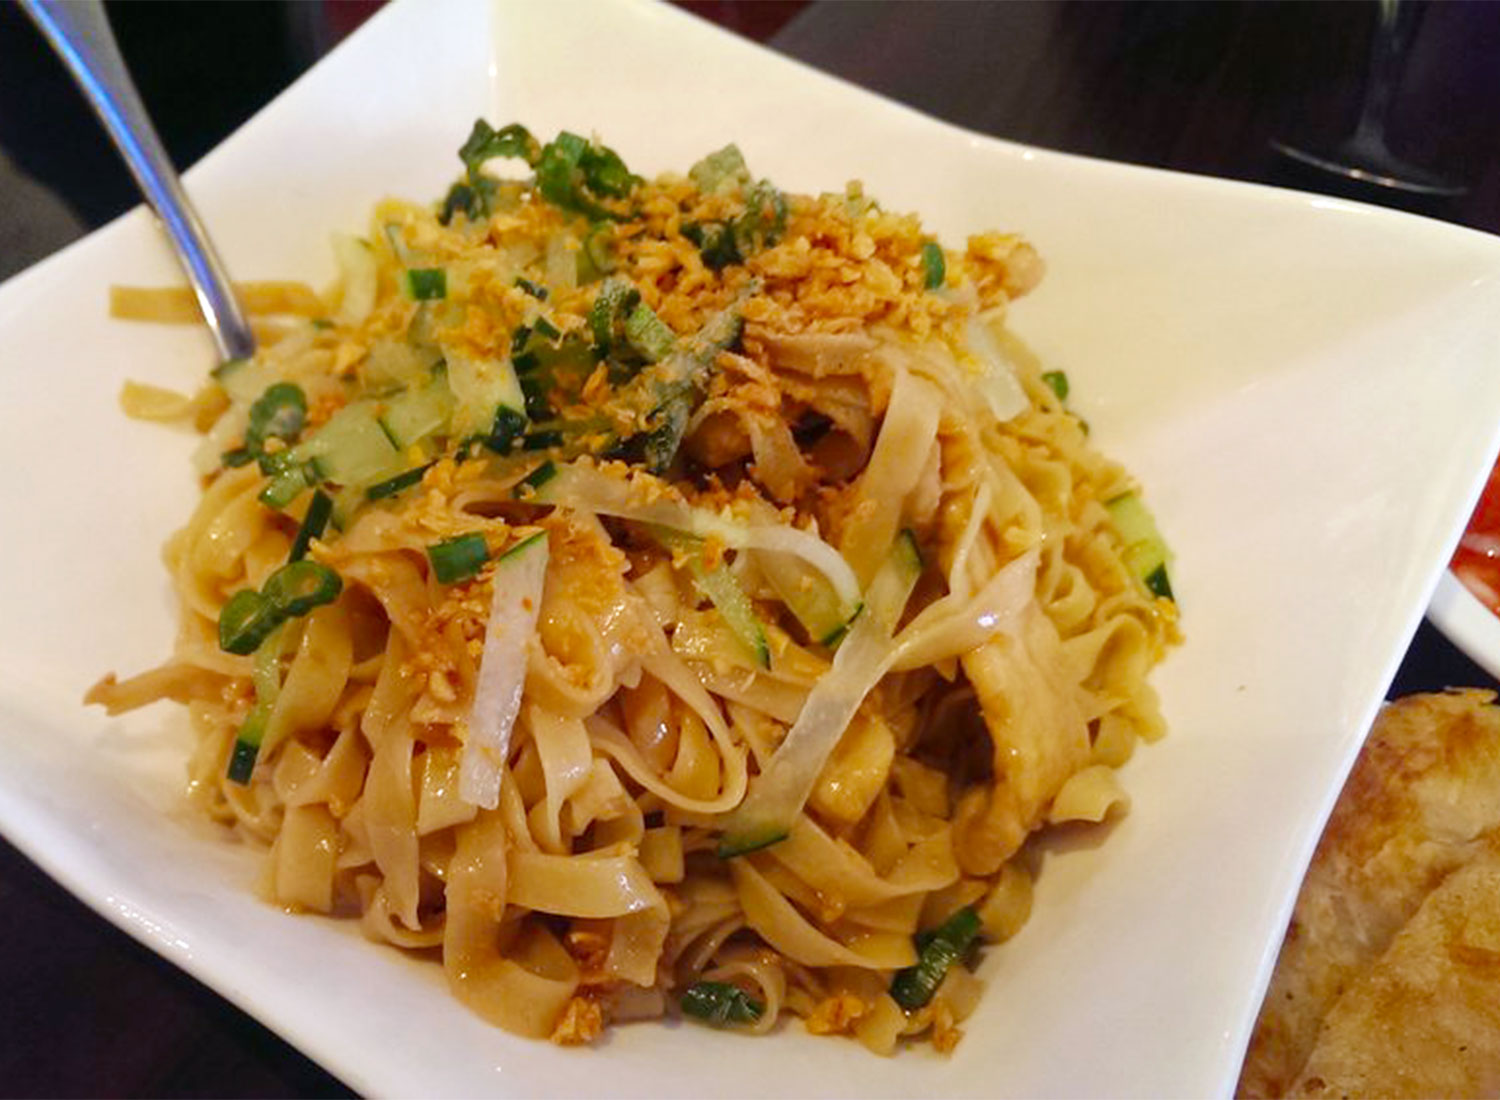 Garlic noodles from Best of Burma in San Mateo. Courtesy of Yelp.